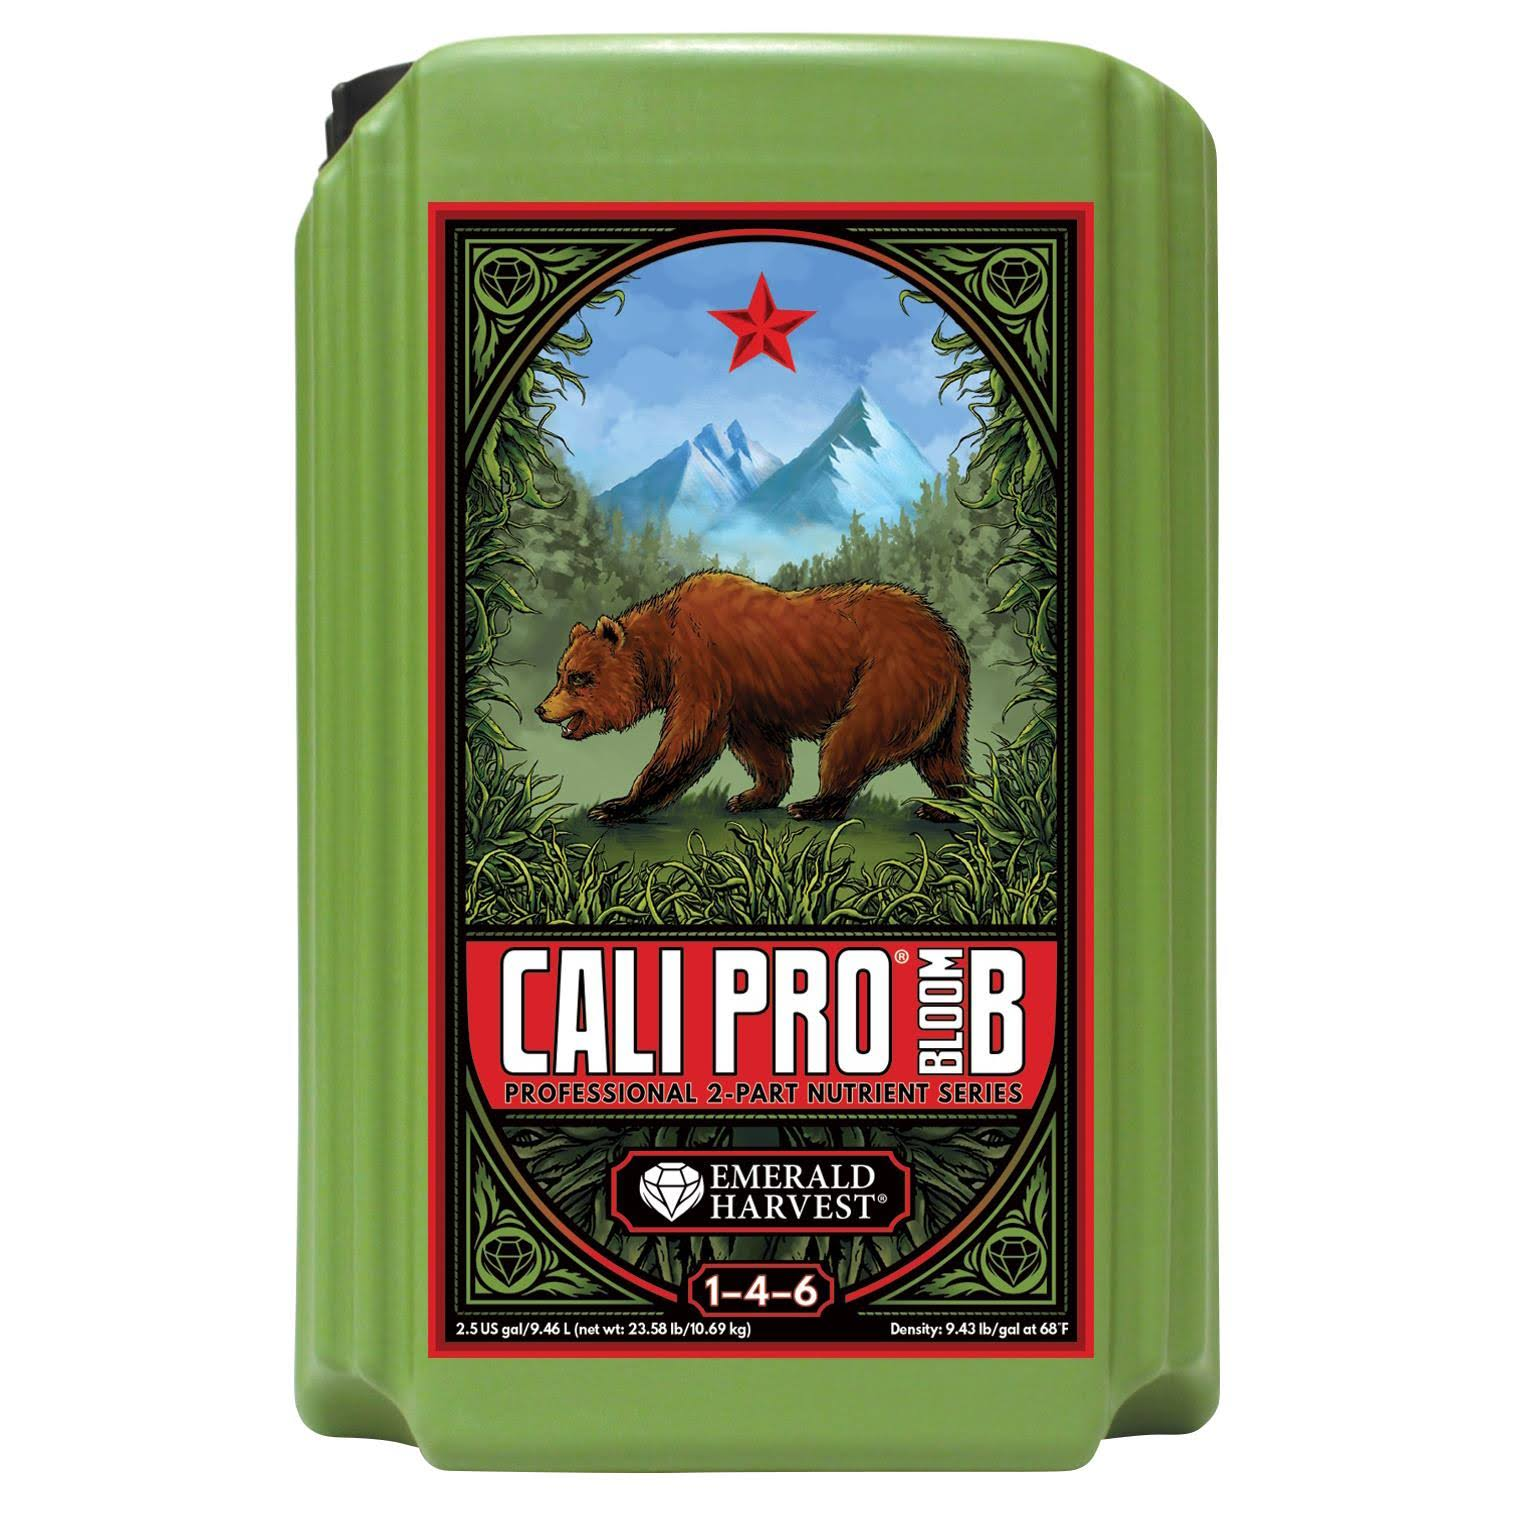 Emerald Harvest Cali Pro Bloom B Liquid Fertilizer - 2.5gal